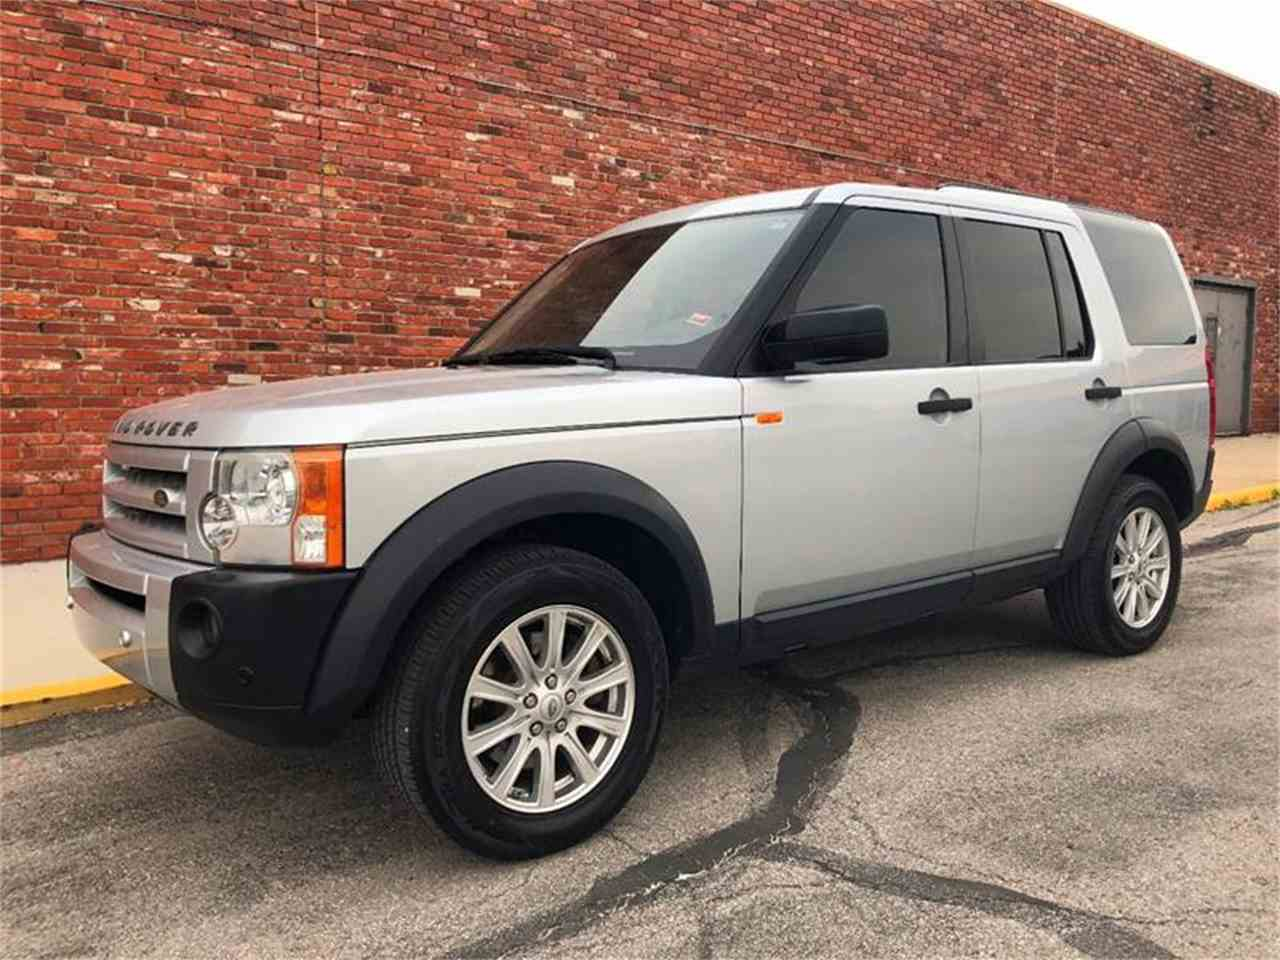 results landrover valuation land auction and sale sales image manu for hr data rover